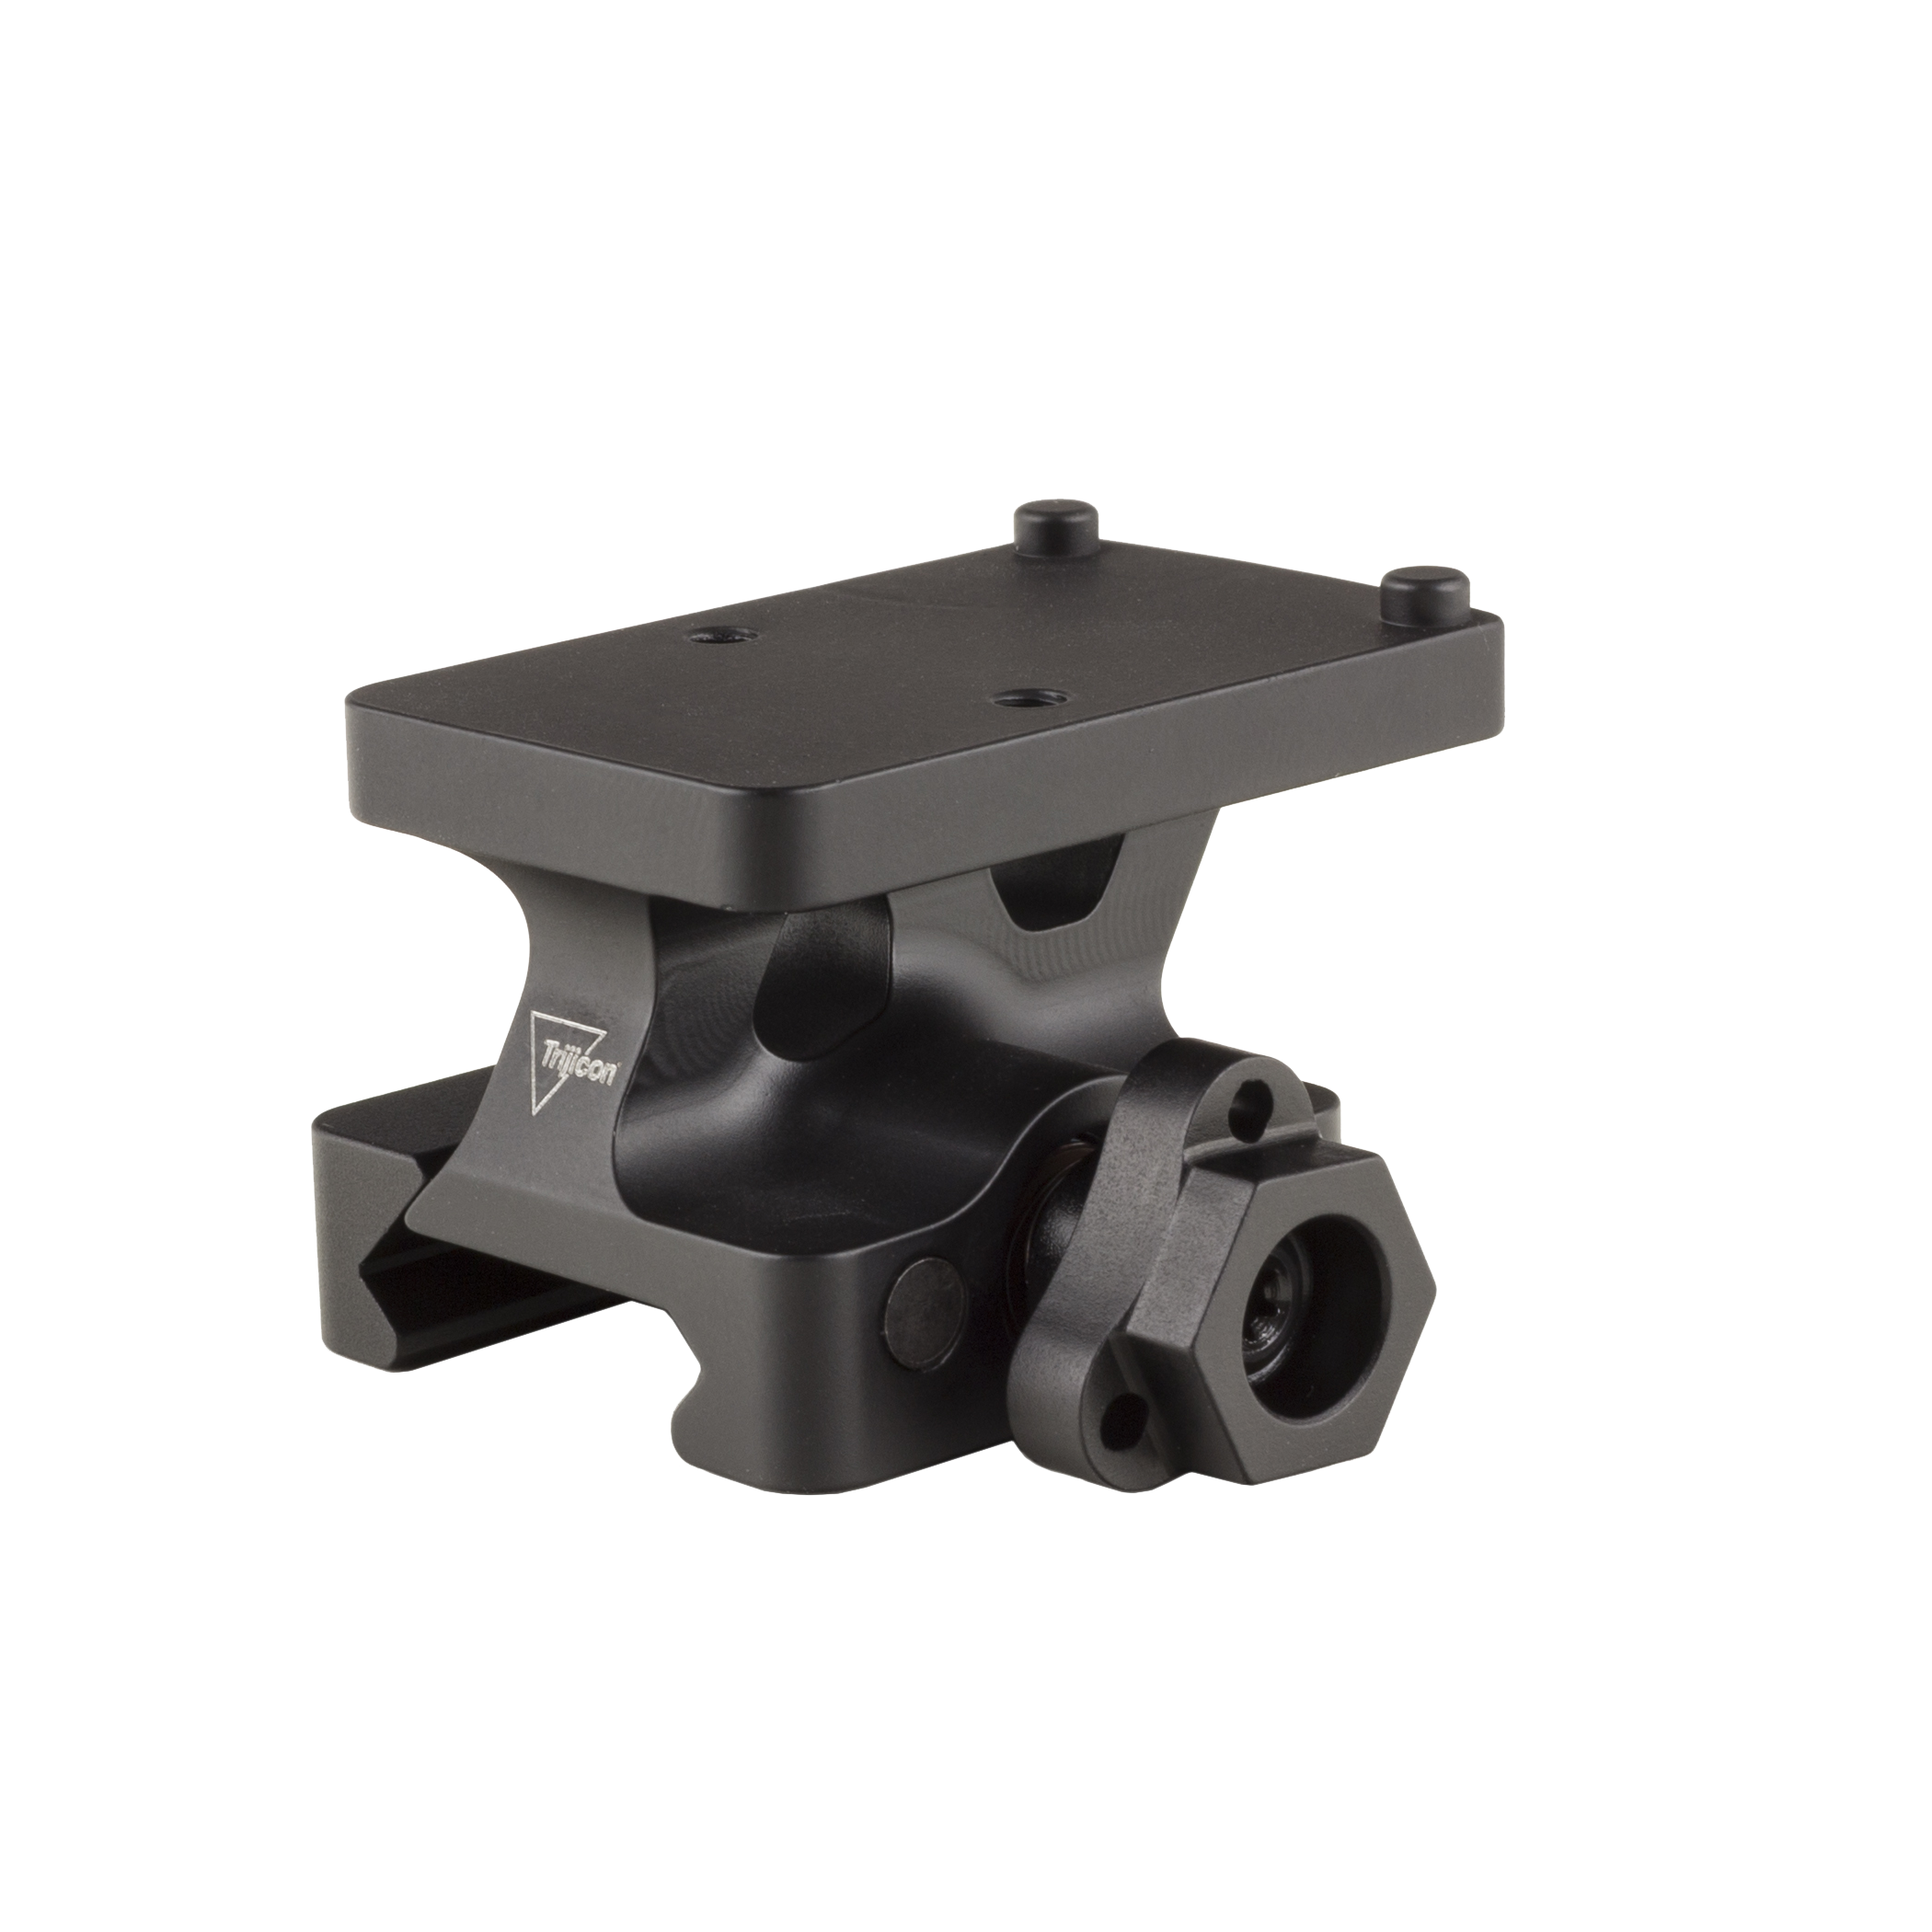 Mounting clip quick release. Trijicon rmr mount height